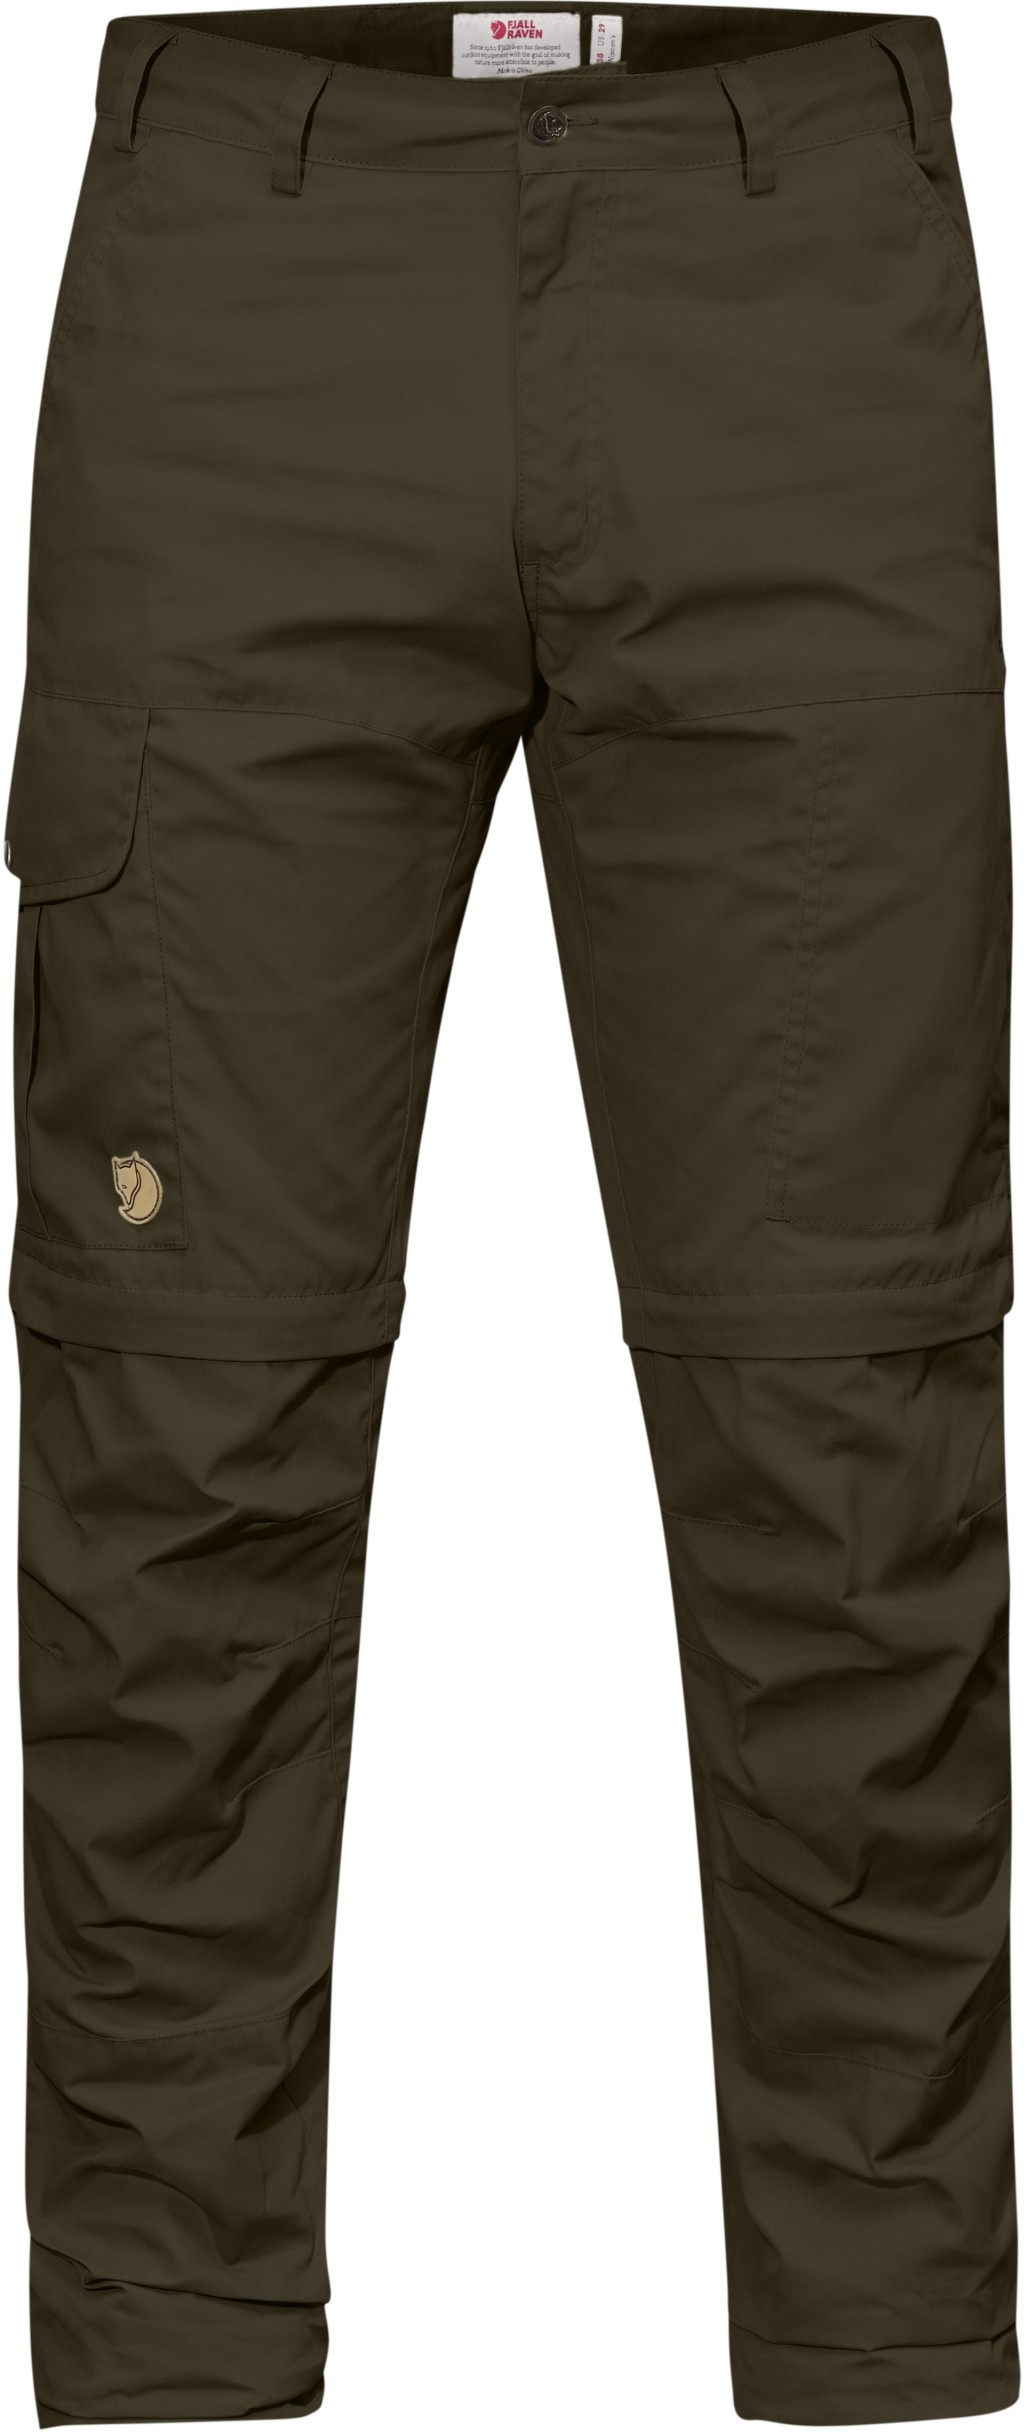 FjallRaven Karl Pro Zip-Off Trousers